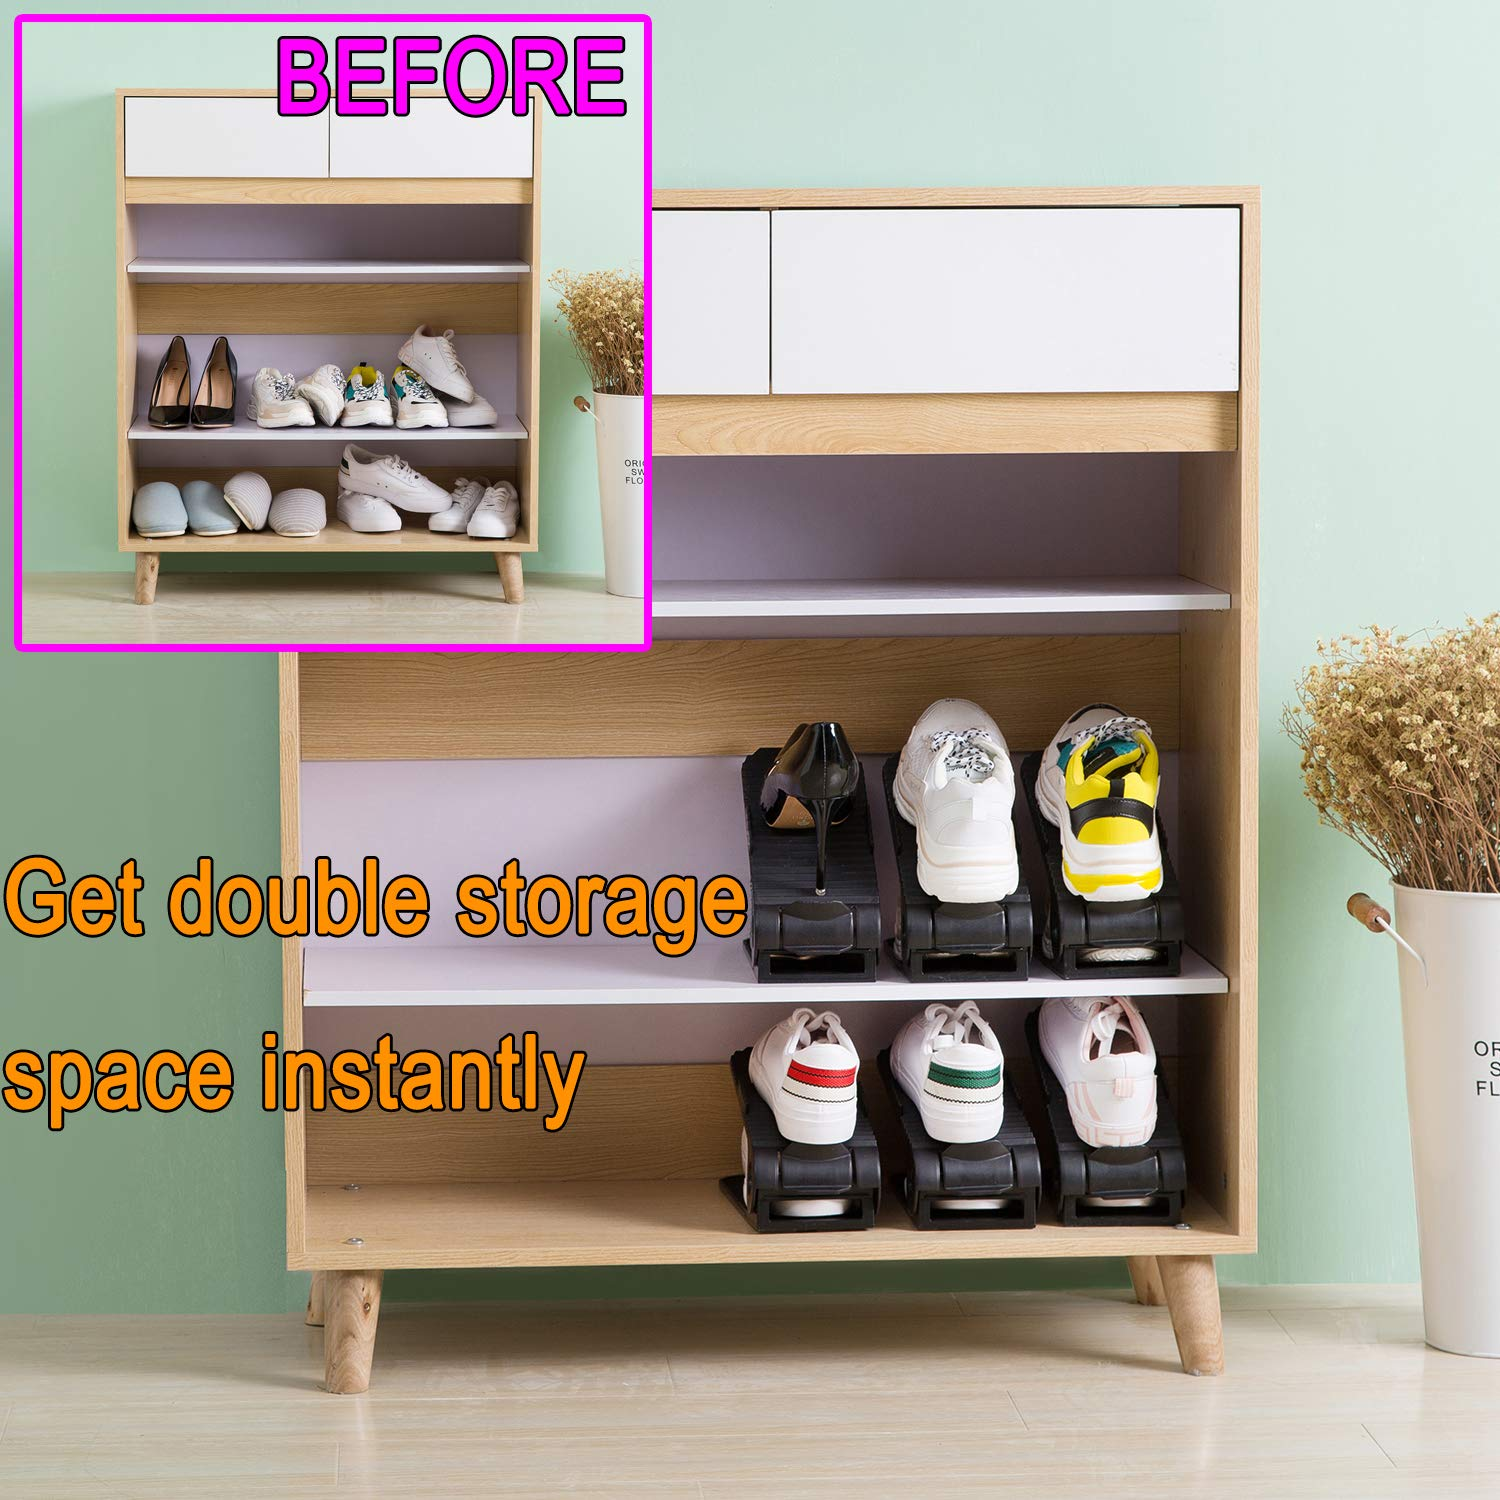 Better Stability Shoe Organizer with More Stable Base 4-Levels Adjustable Shoe Organizer 10 Piece Set Shoe Slots Organizer Space Saver for Closet